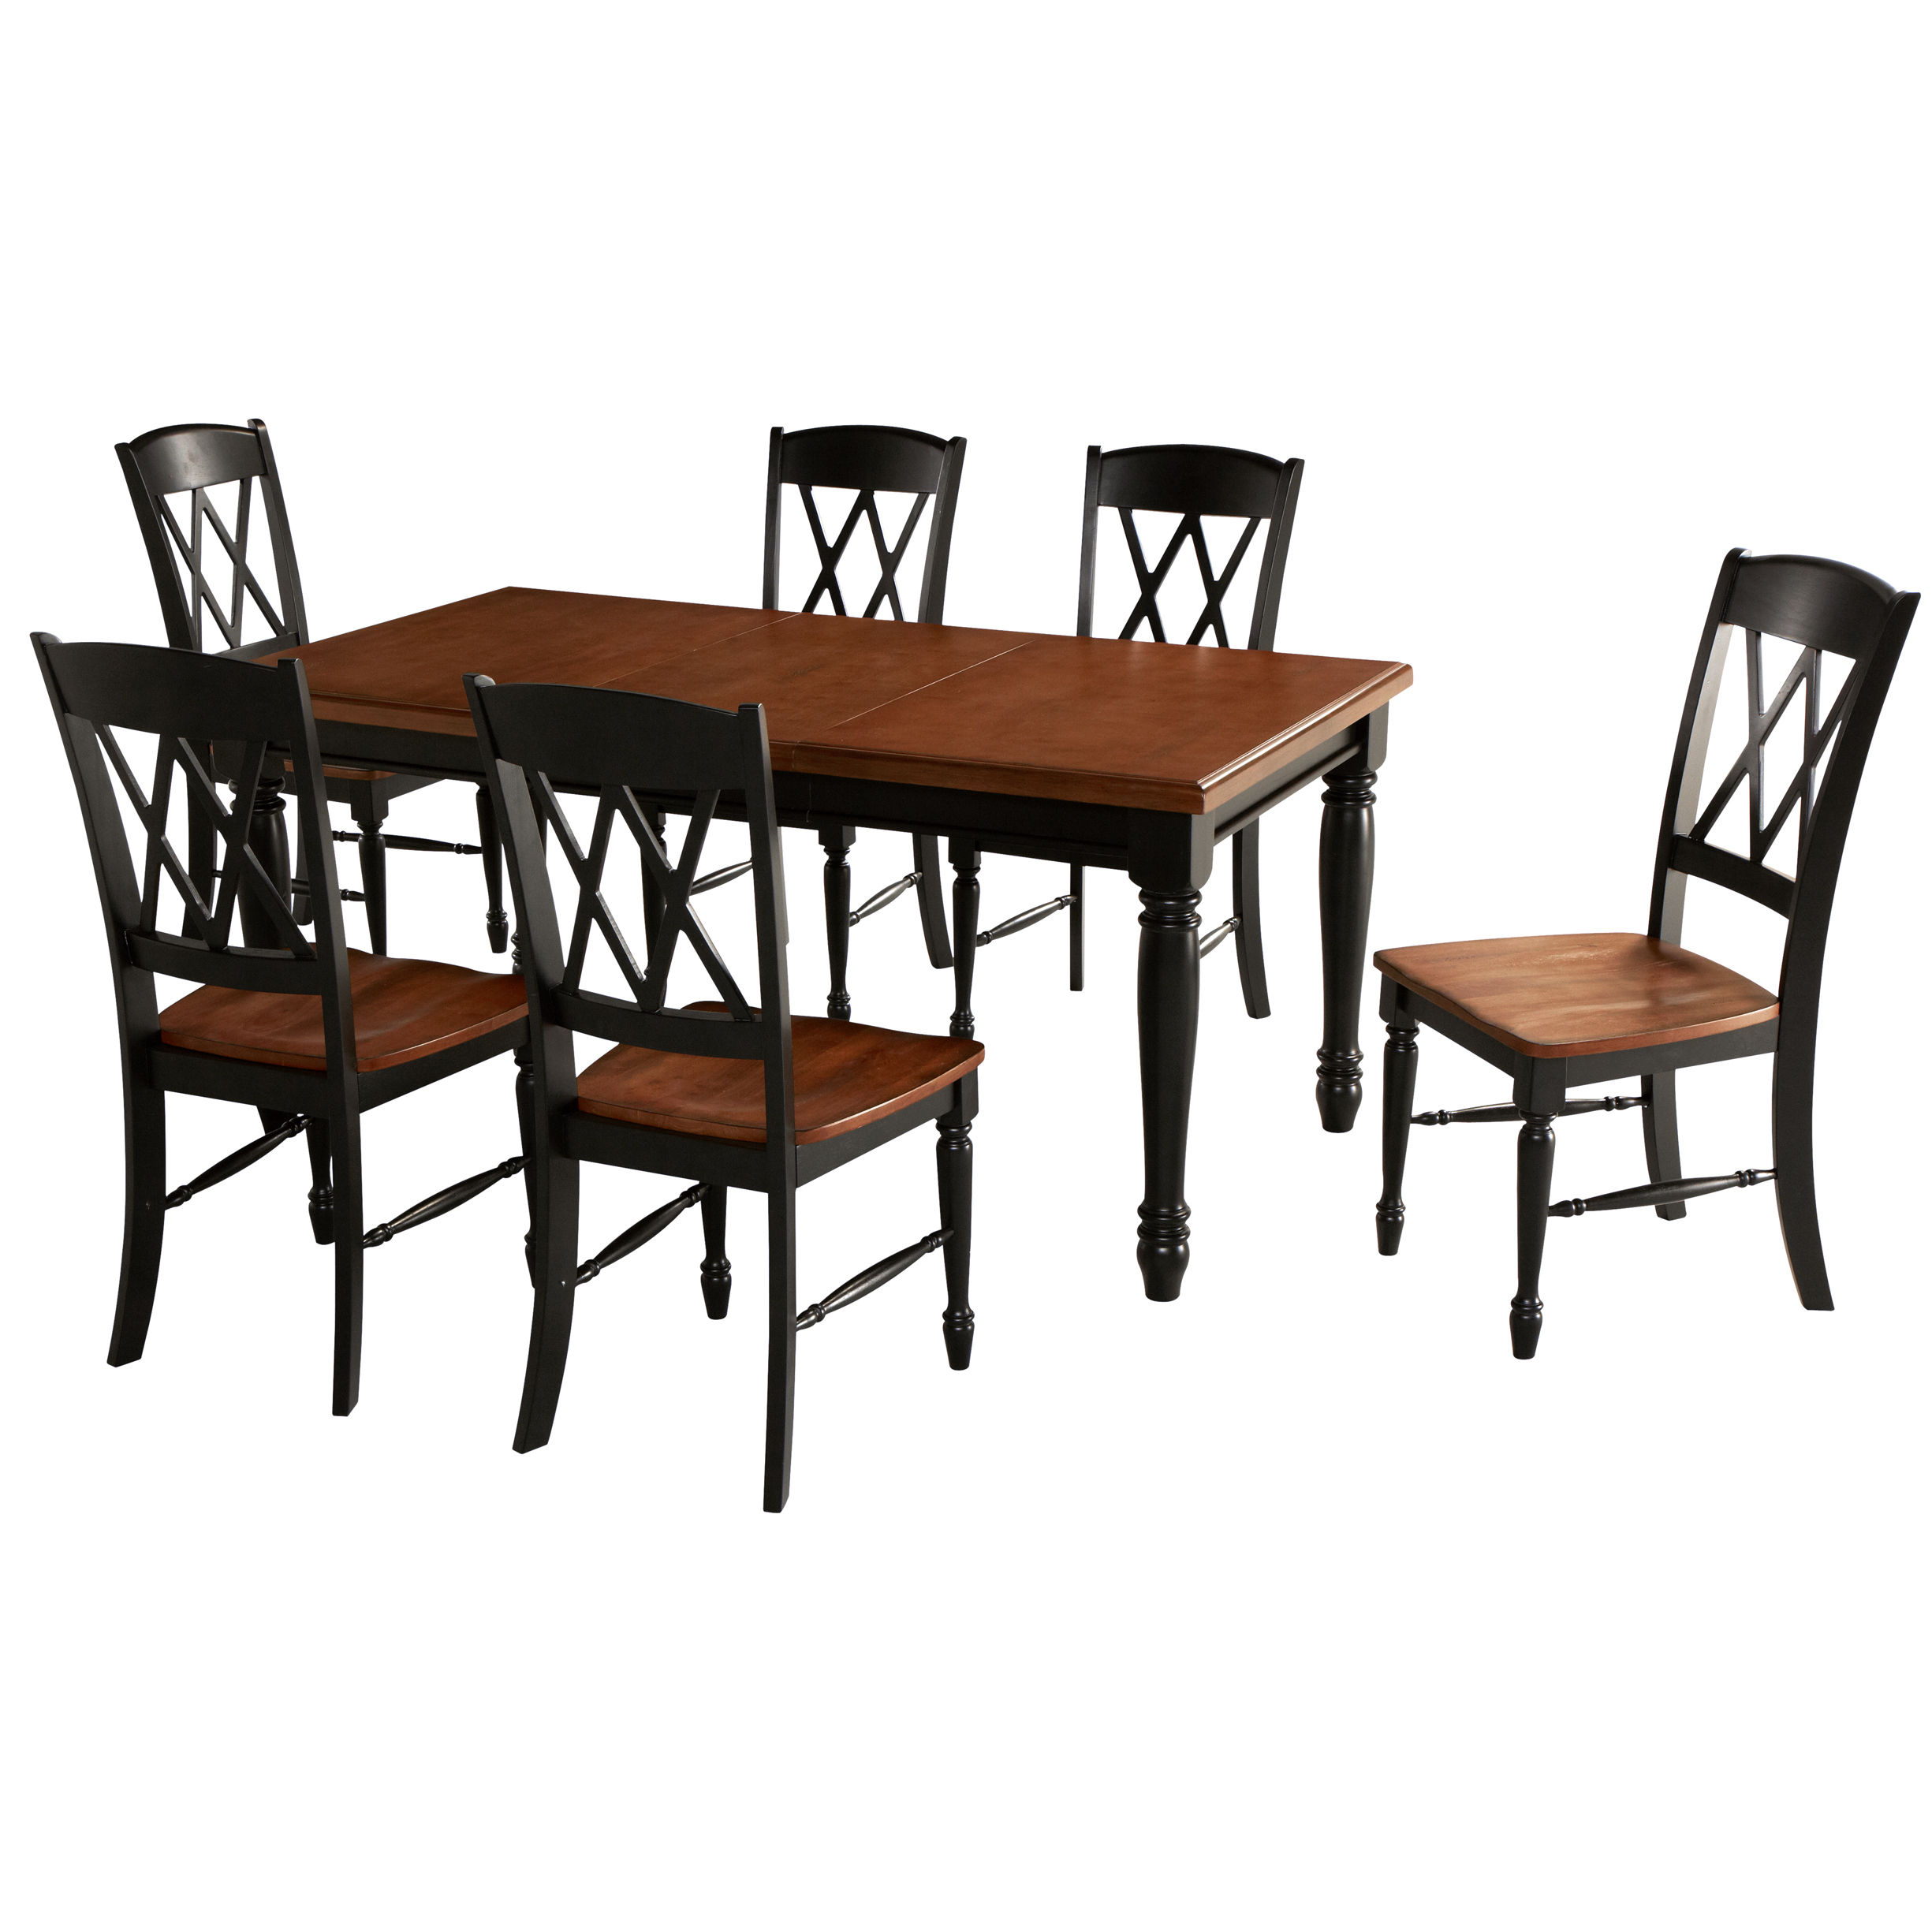 Home Styles Monarch 7 Piece Dining Set In Black And Oak Finish